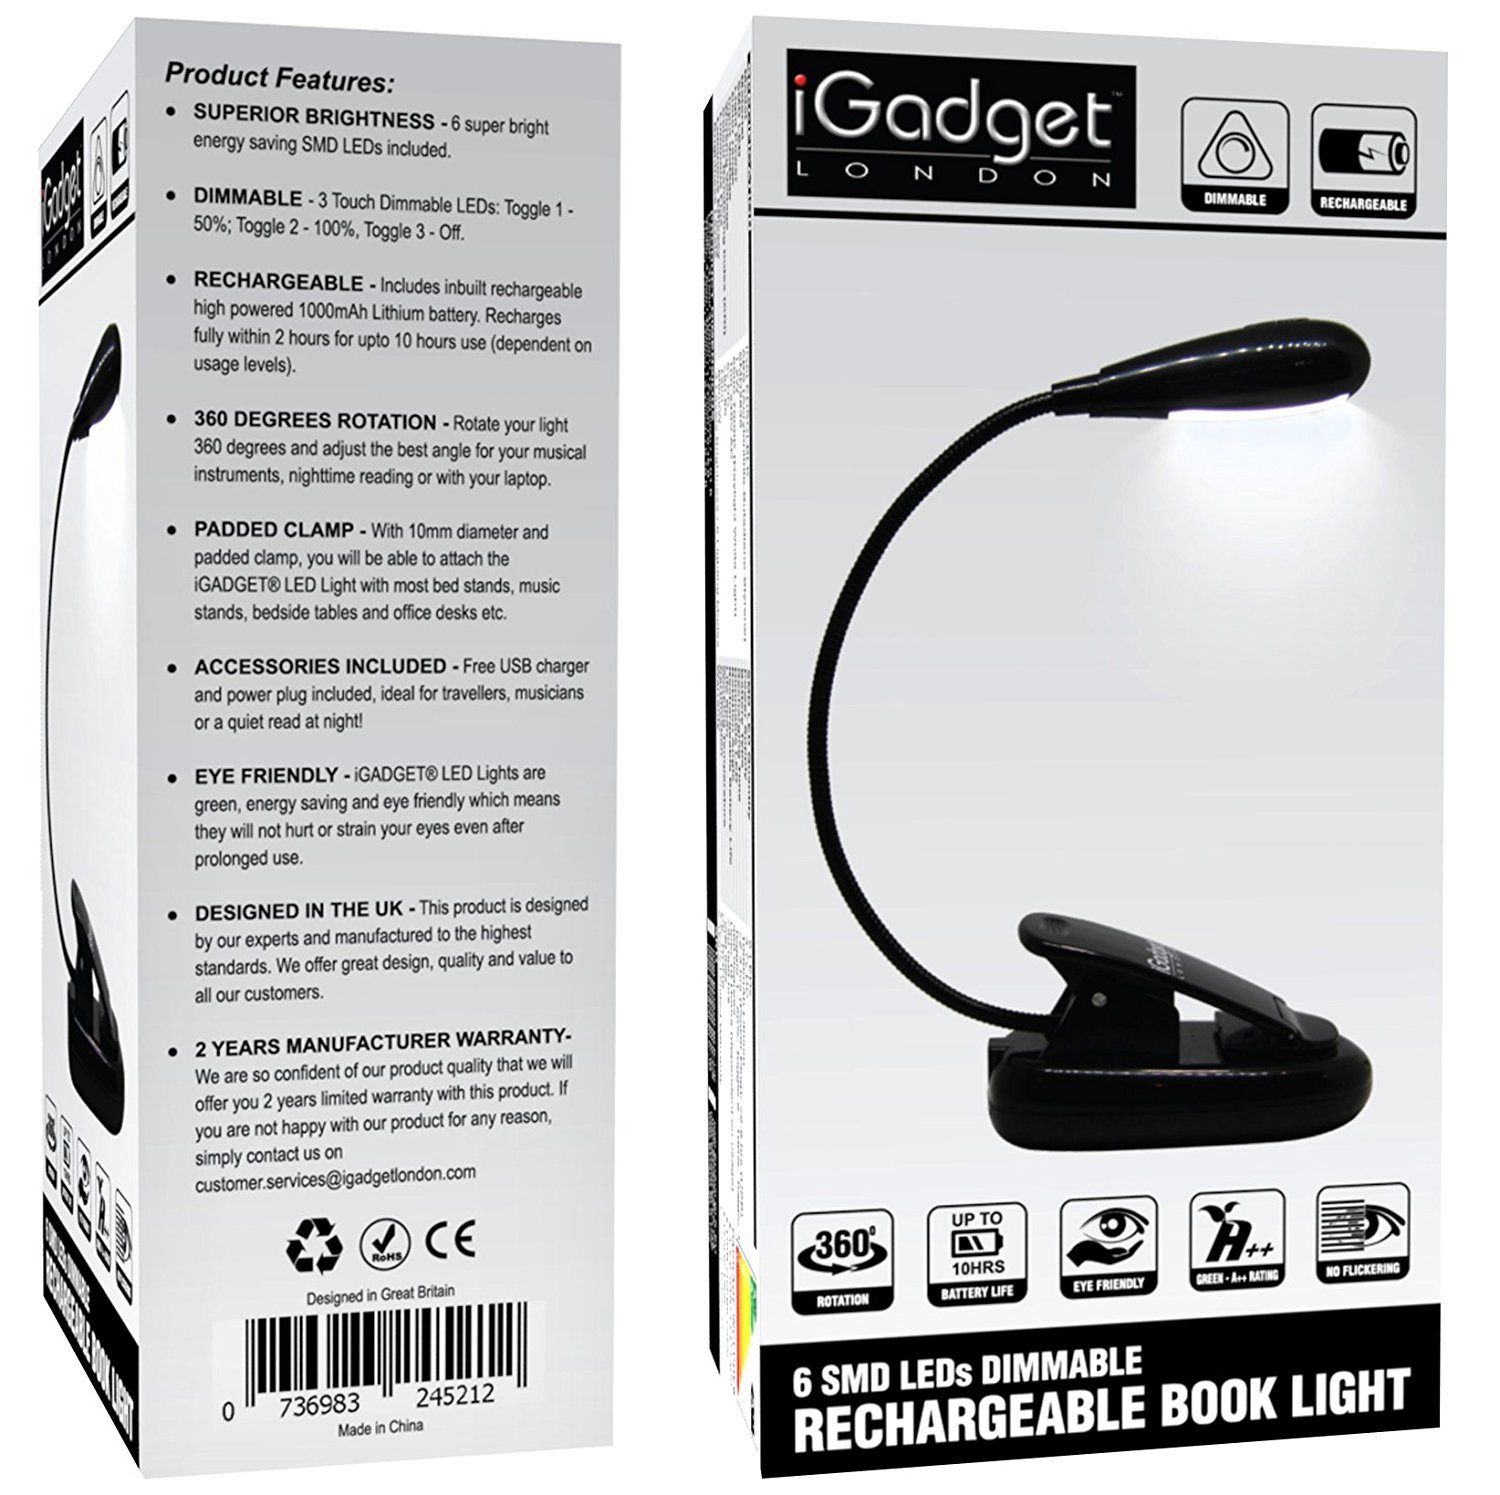 igad 6 smd led rechargeable dimmable cordless book